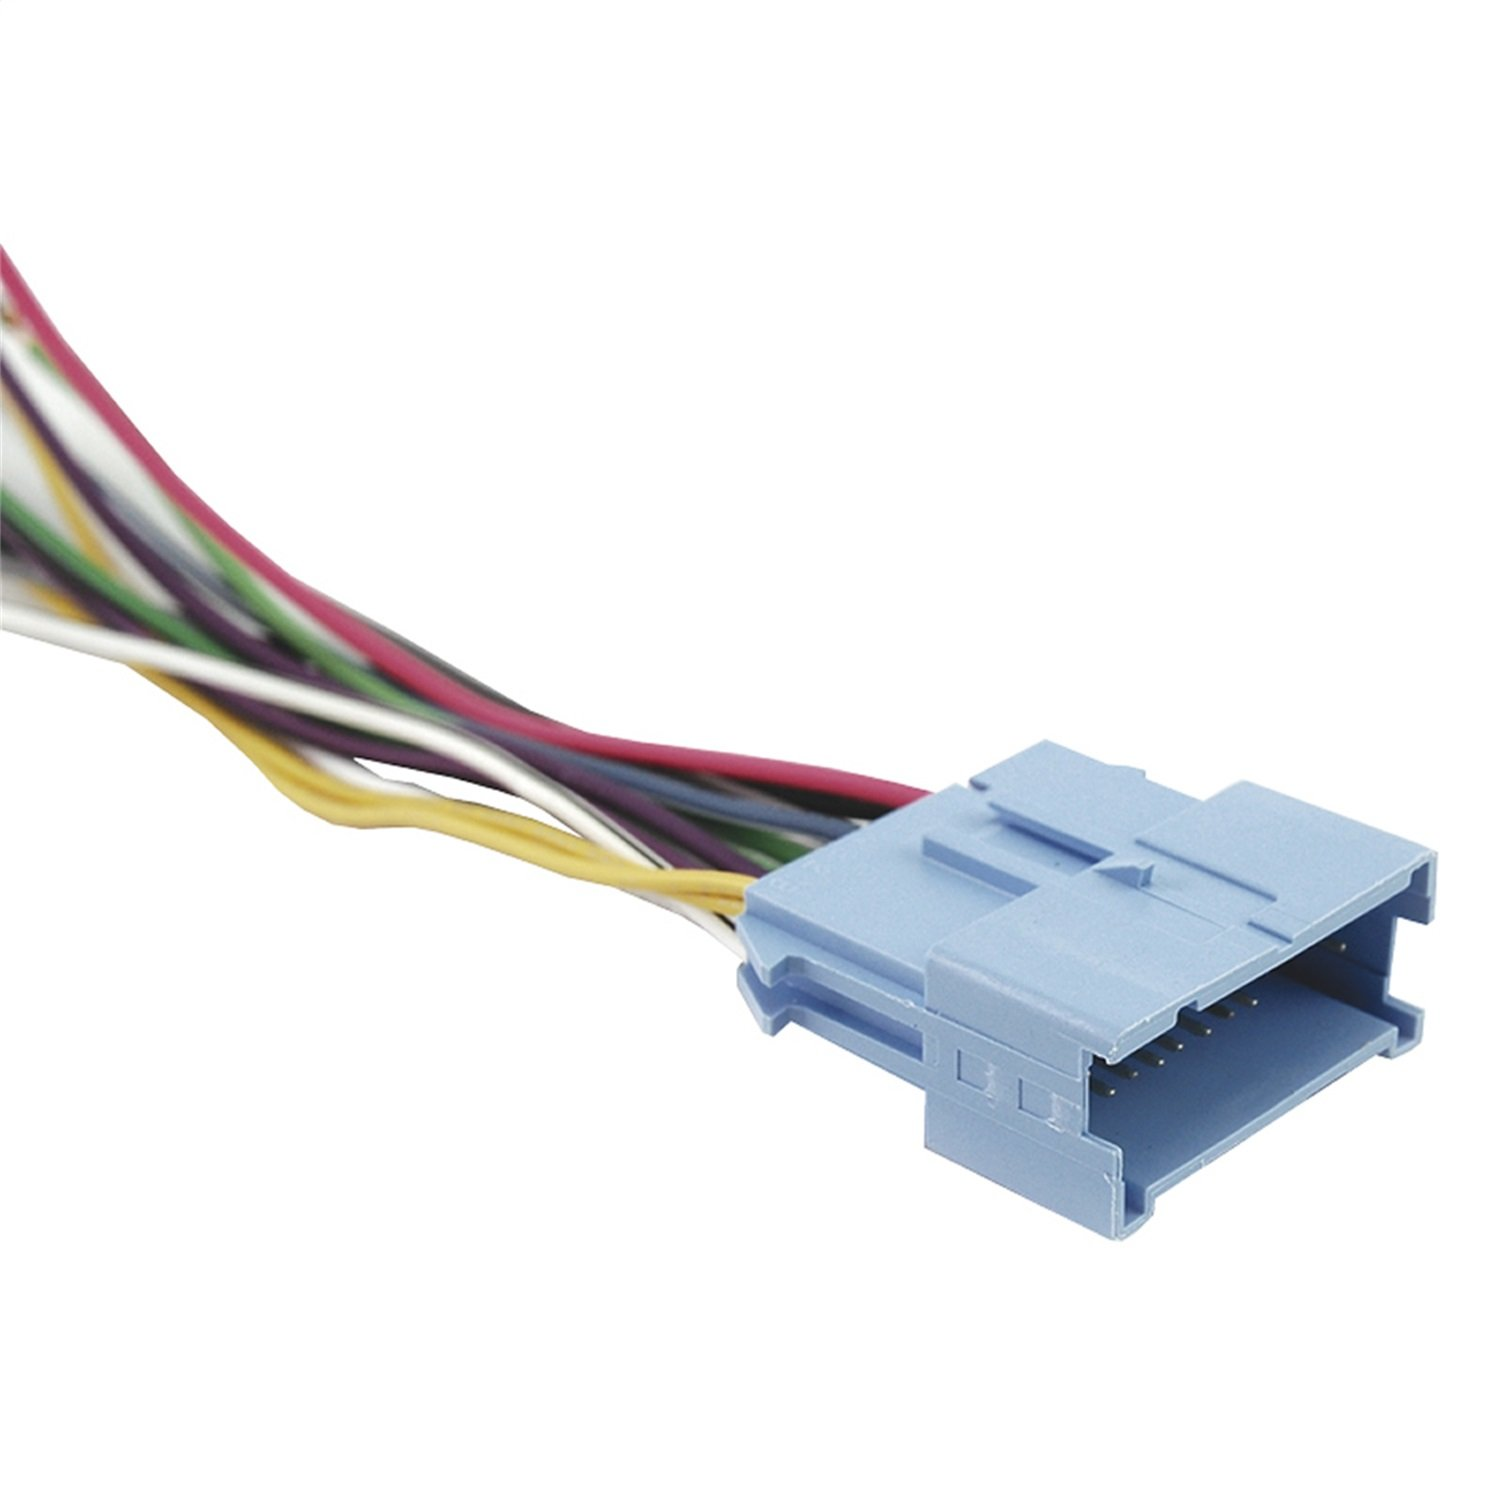 Metra GMRC-05 Factory Radio Interface Harness for GM Vehicles